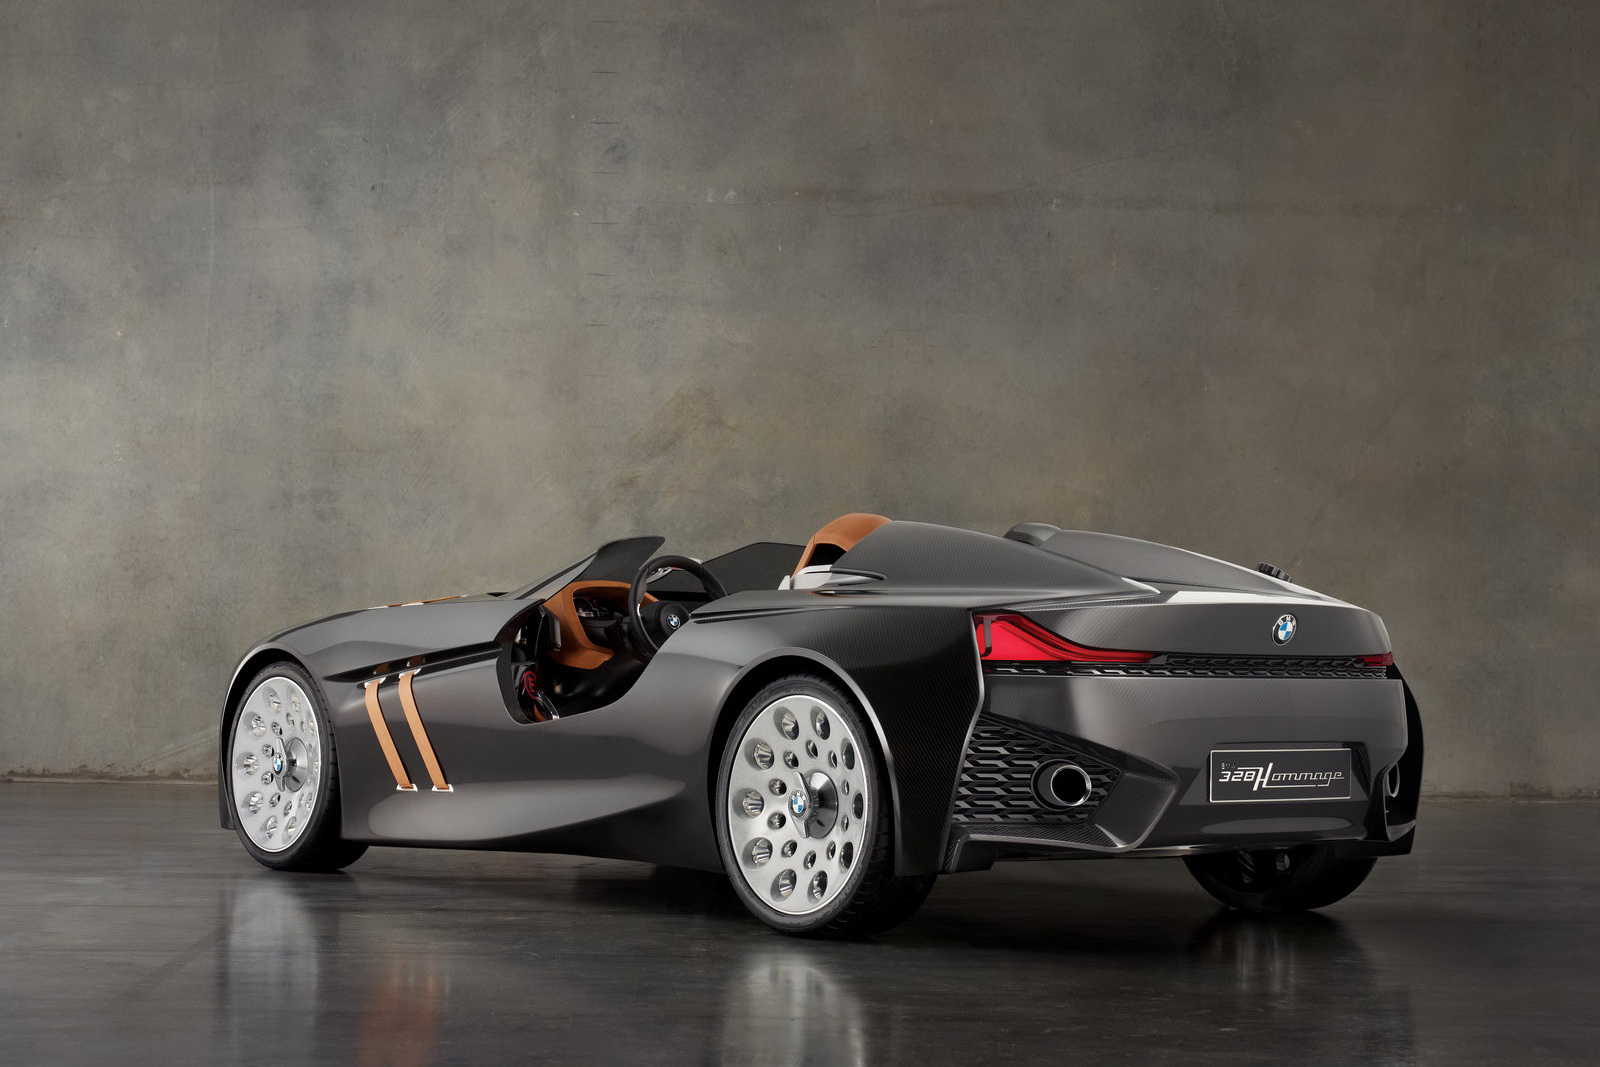 BMW 328 Hommage Concept 5 BMW's Retrolicious 328 Homage Concept Car to Launch Soon